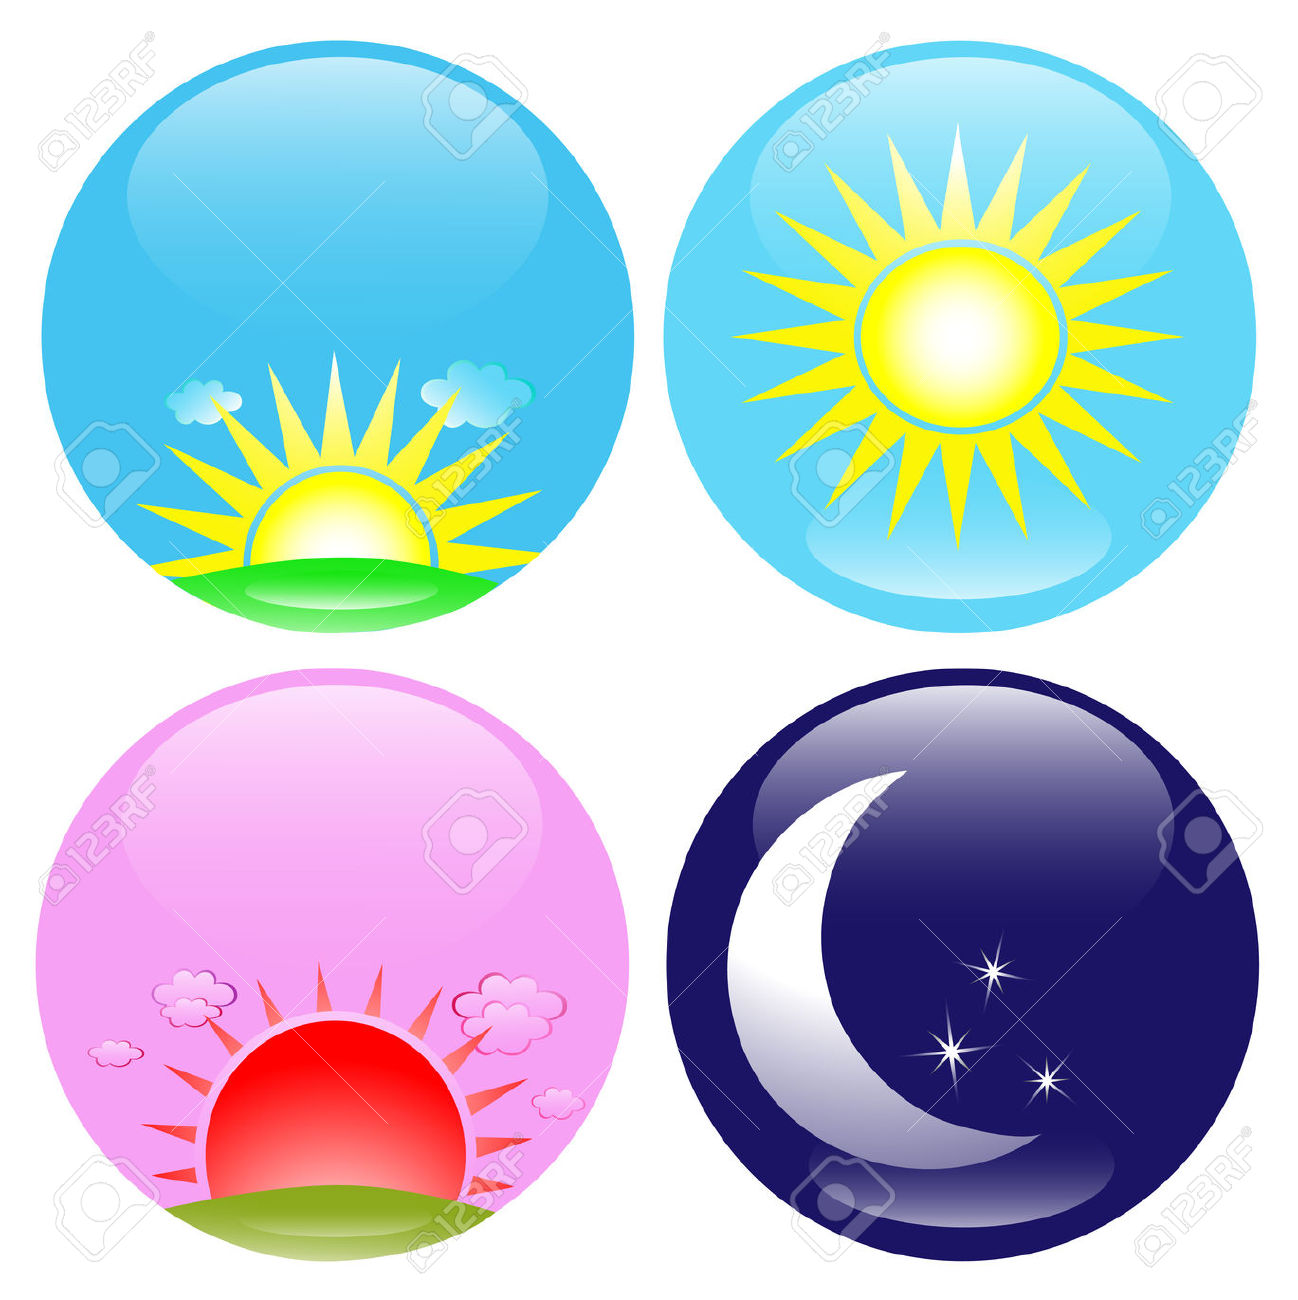 Clipart sun night. Noon free download best